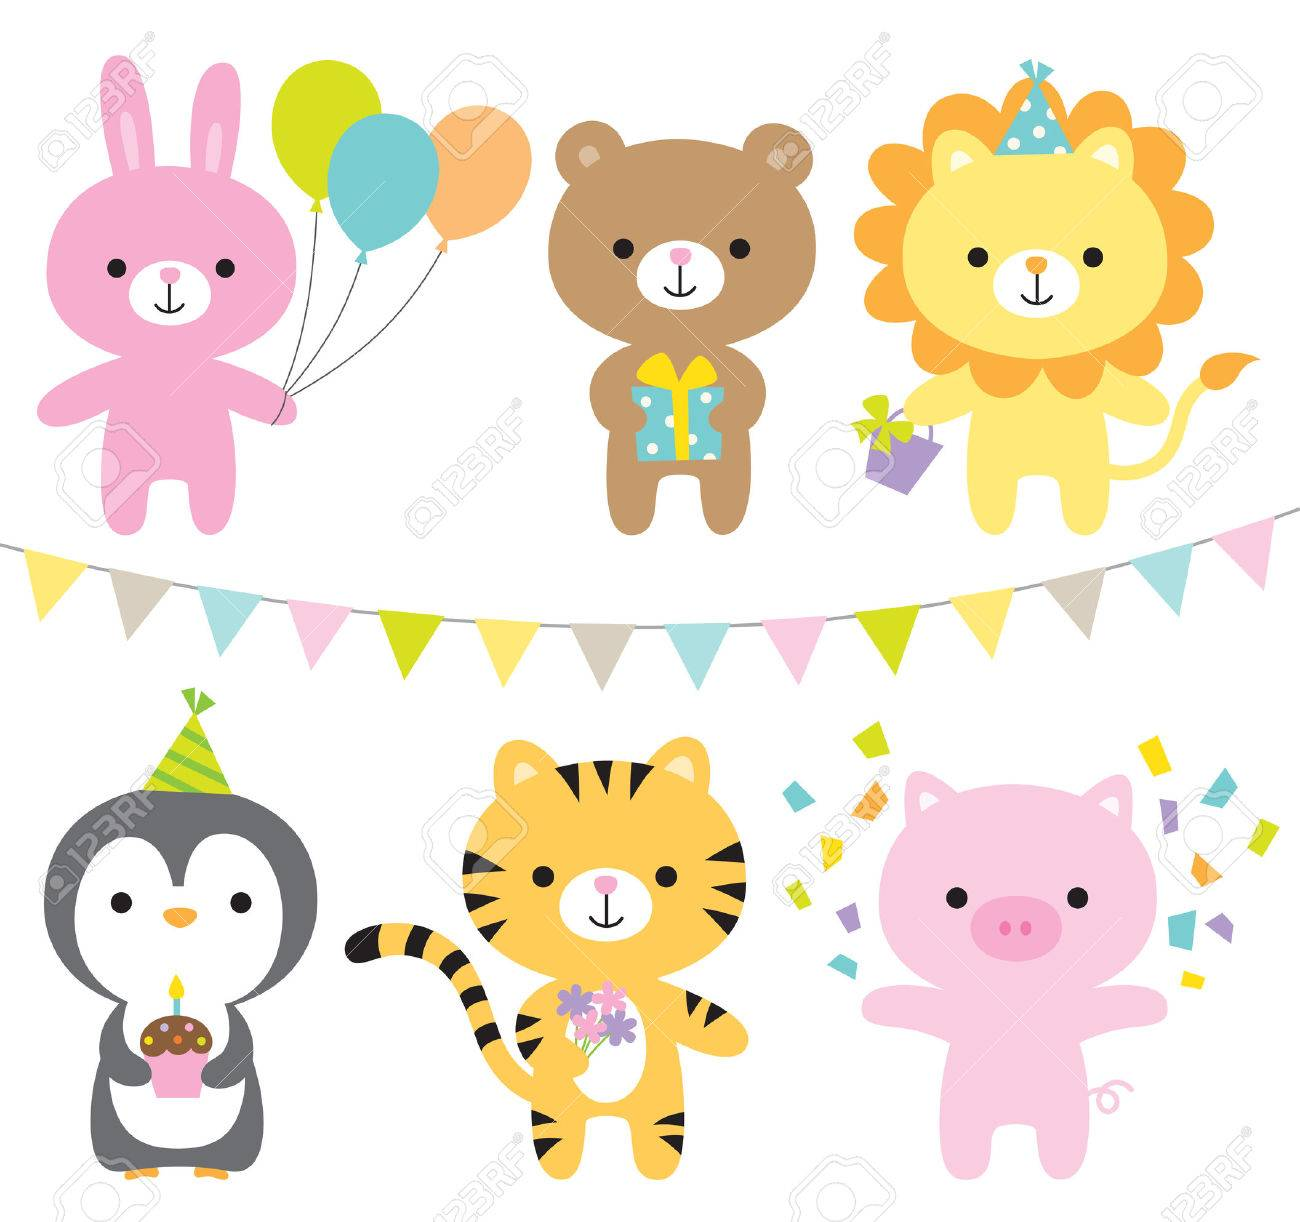 illustration of animals including rabbit, bear, lion, penguin, tiger, and pig at party. - 55110175